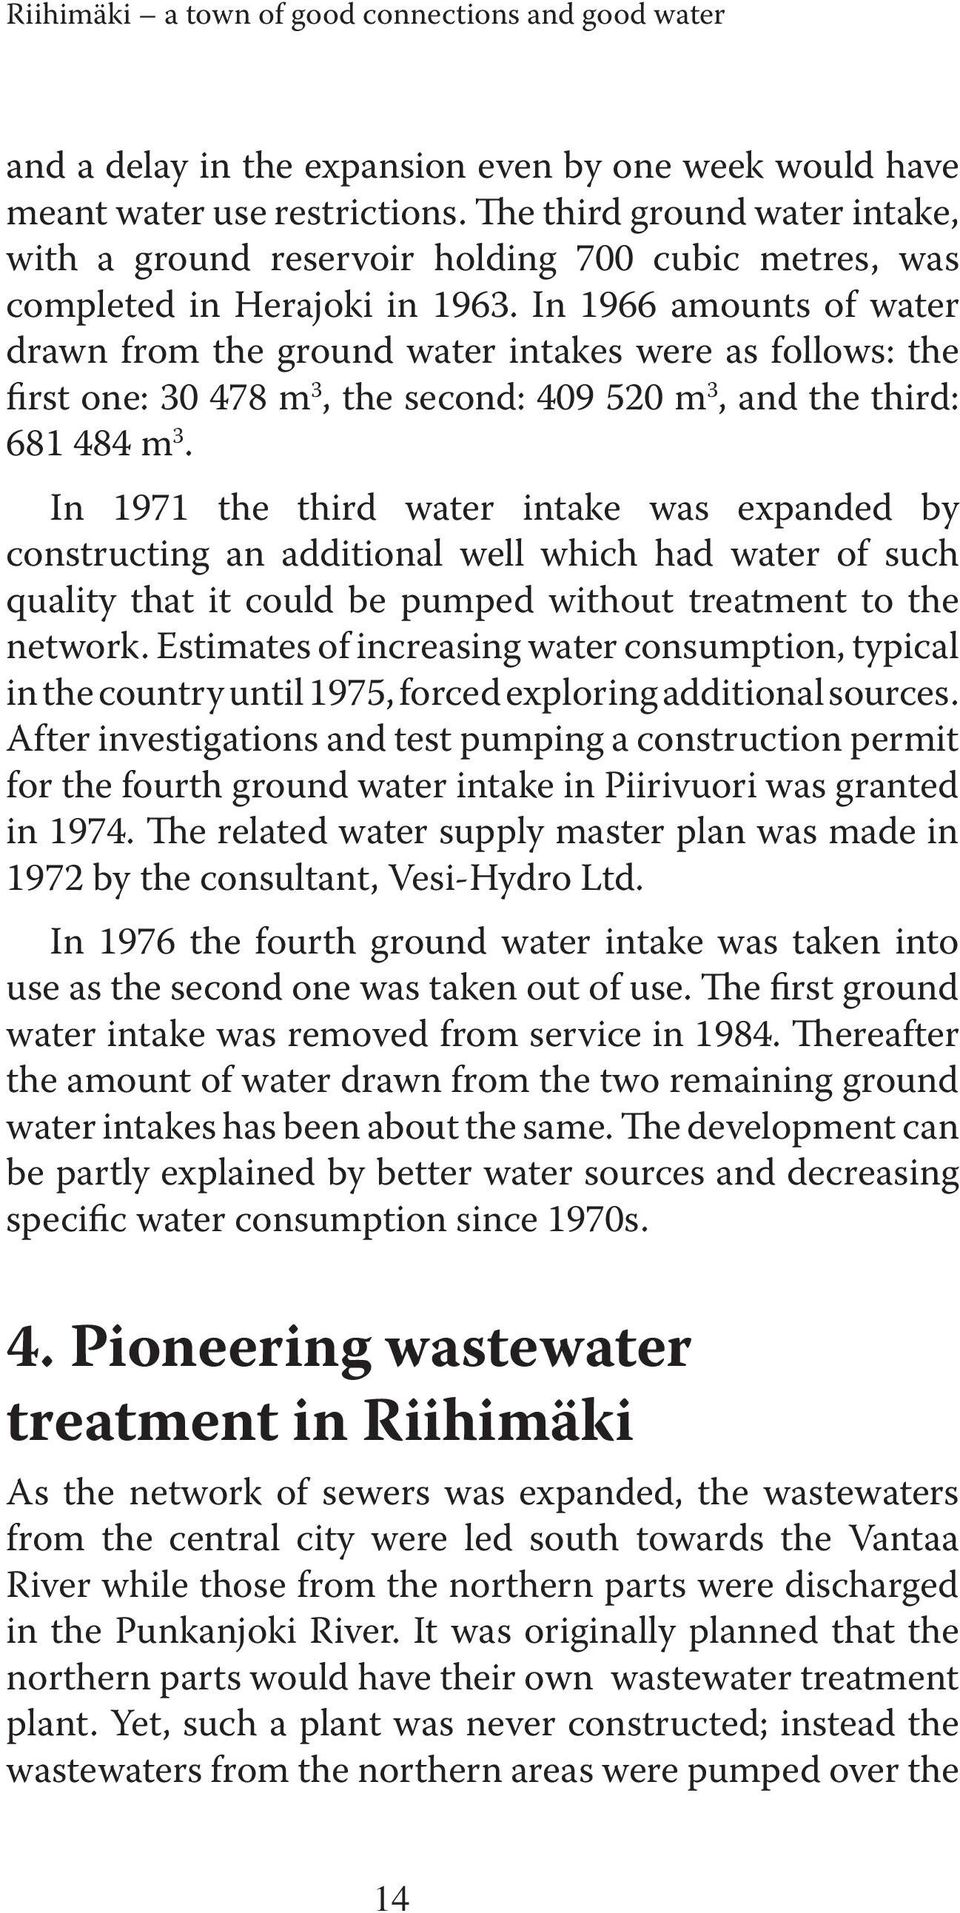 In 1966 amounts of water drawn from the ground water intakes were as follows: the first one: 30 478 m 3, the second: 409 520 m 3, and the third: 681 484 m 3.